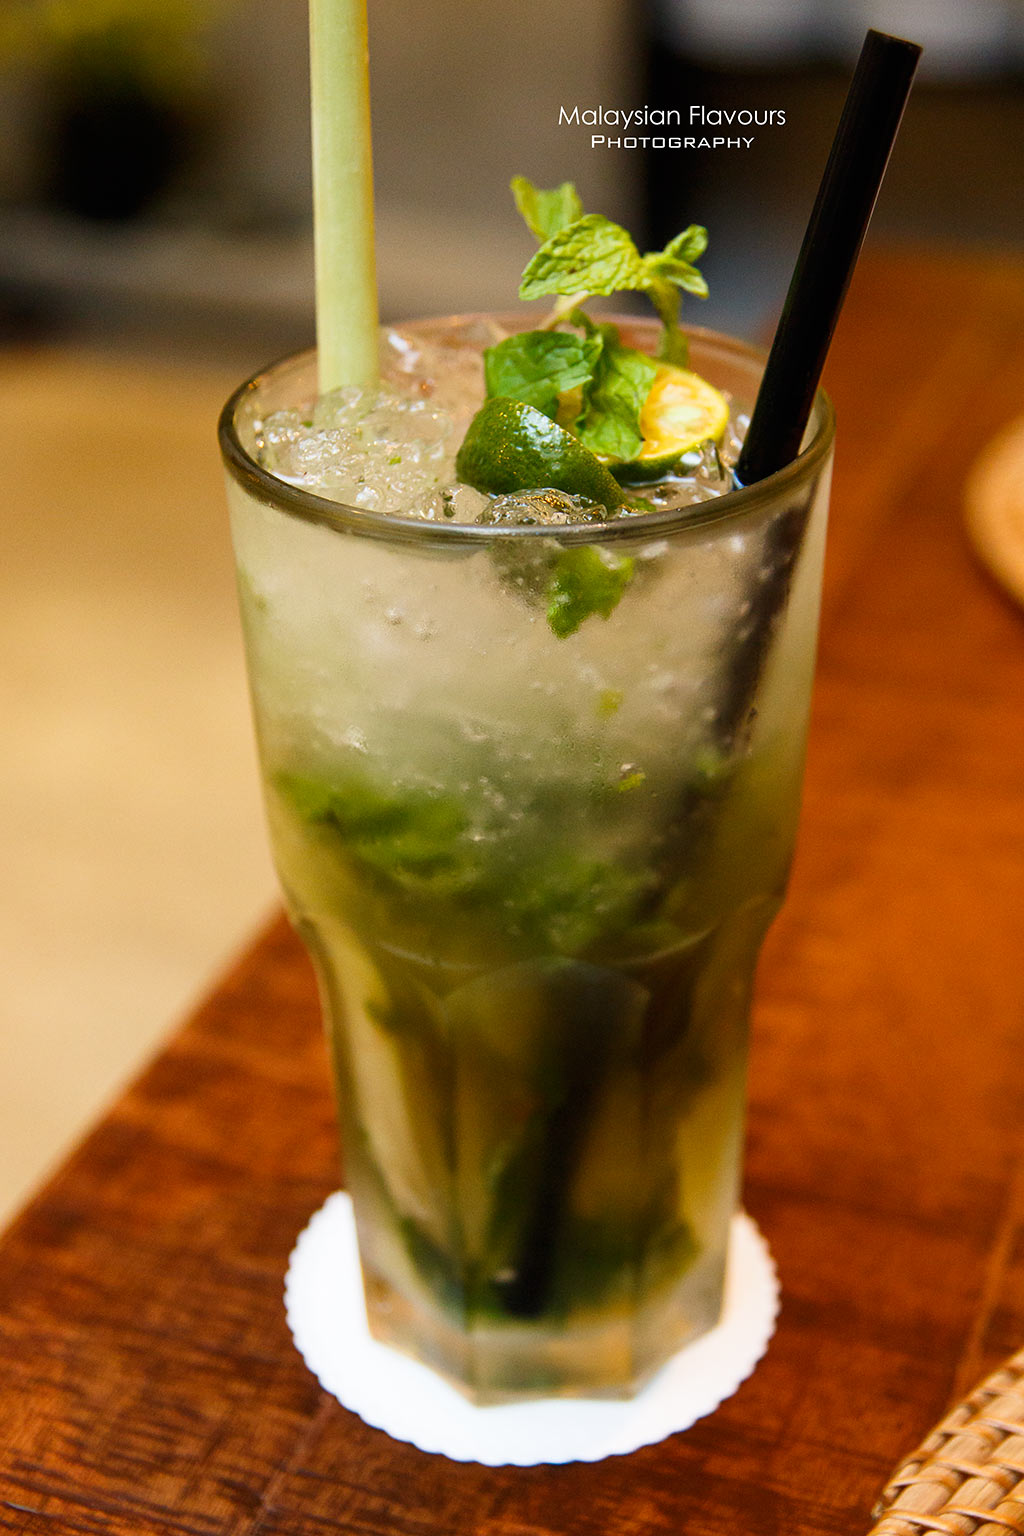 bali and spice damen subang jaya lemongrass mojito